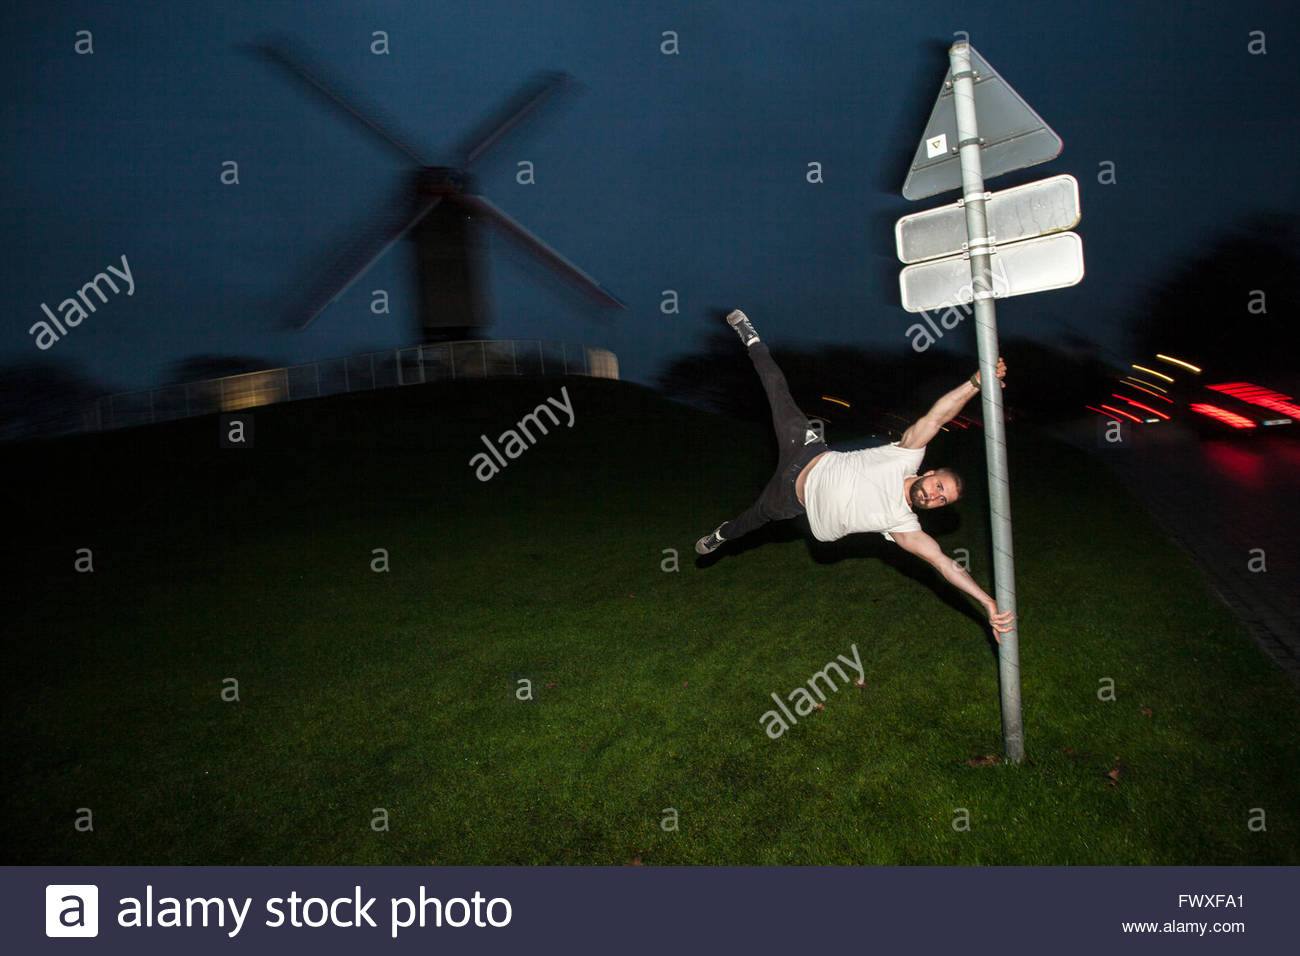 Traceur practicing parkour. Man imitating Sint-Janshuismolen windmill on a street sign, Windmills of Bruges © - Stock Image